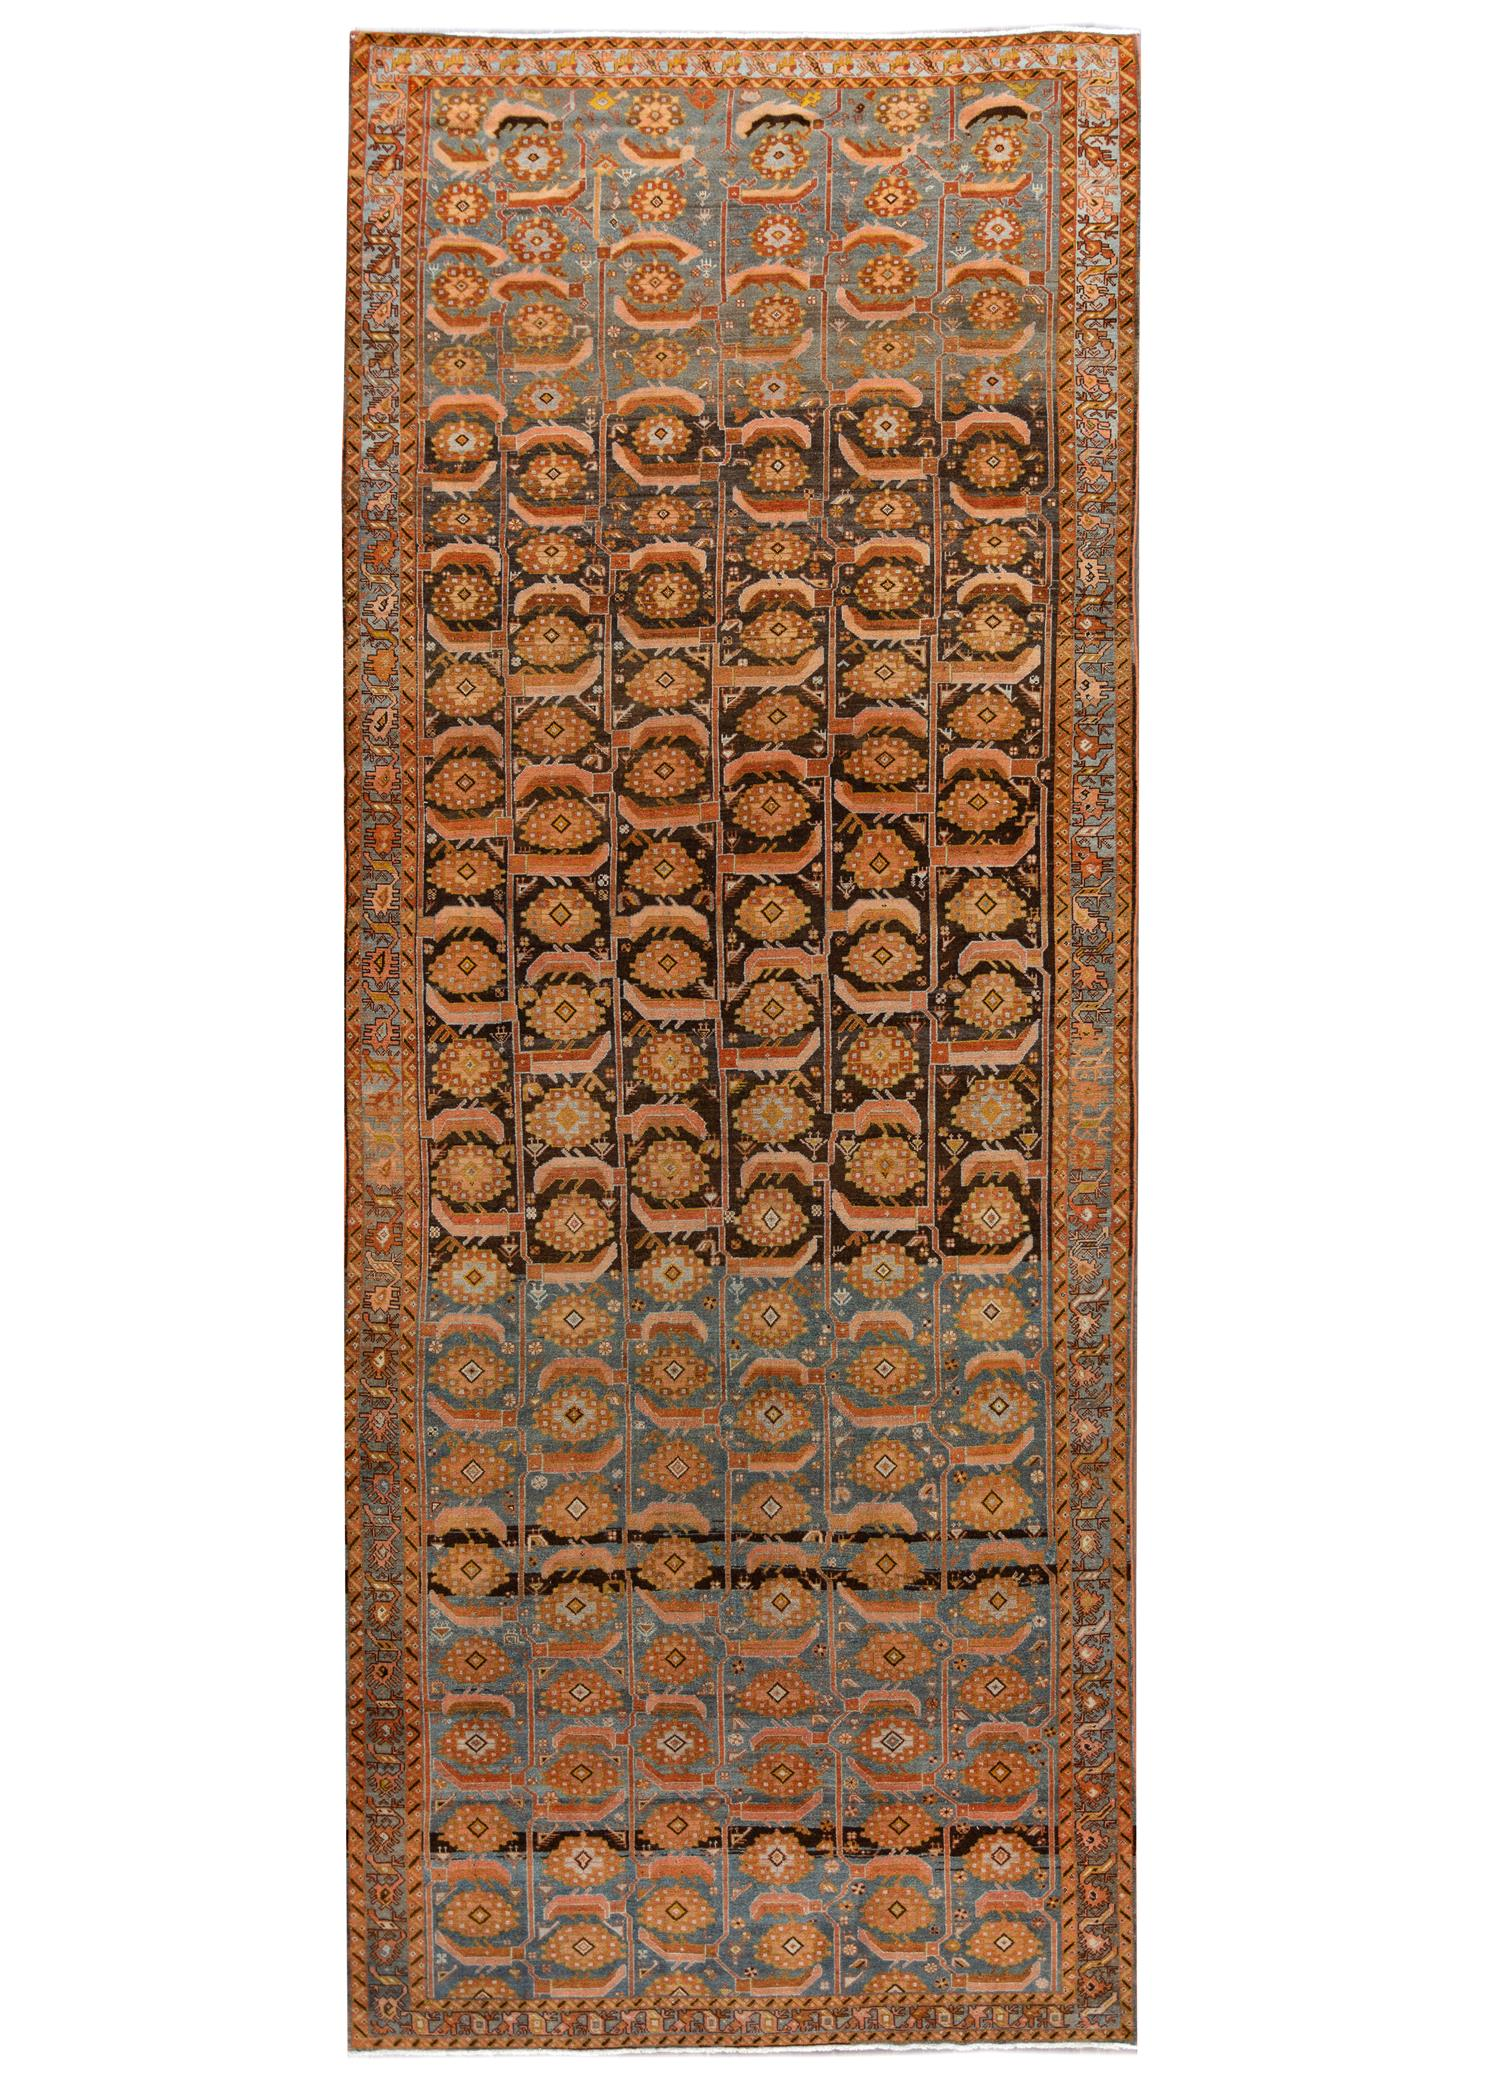 Antique Malayer Rug, #10235251, 7' x 17'